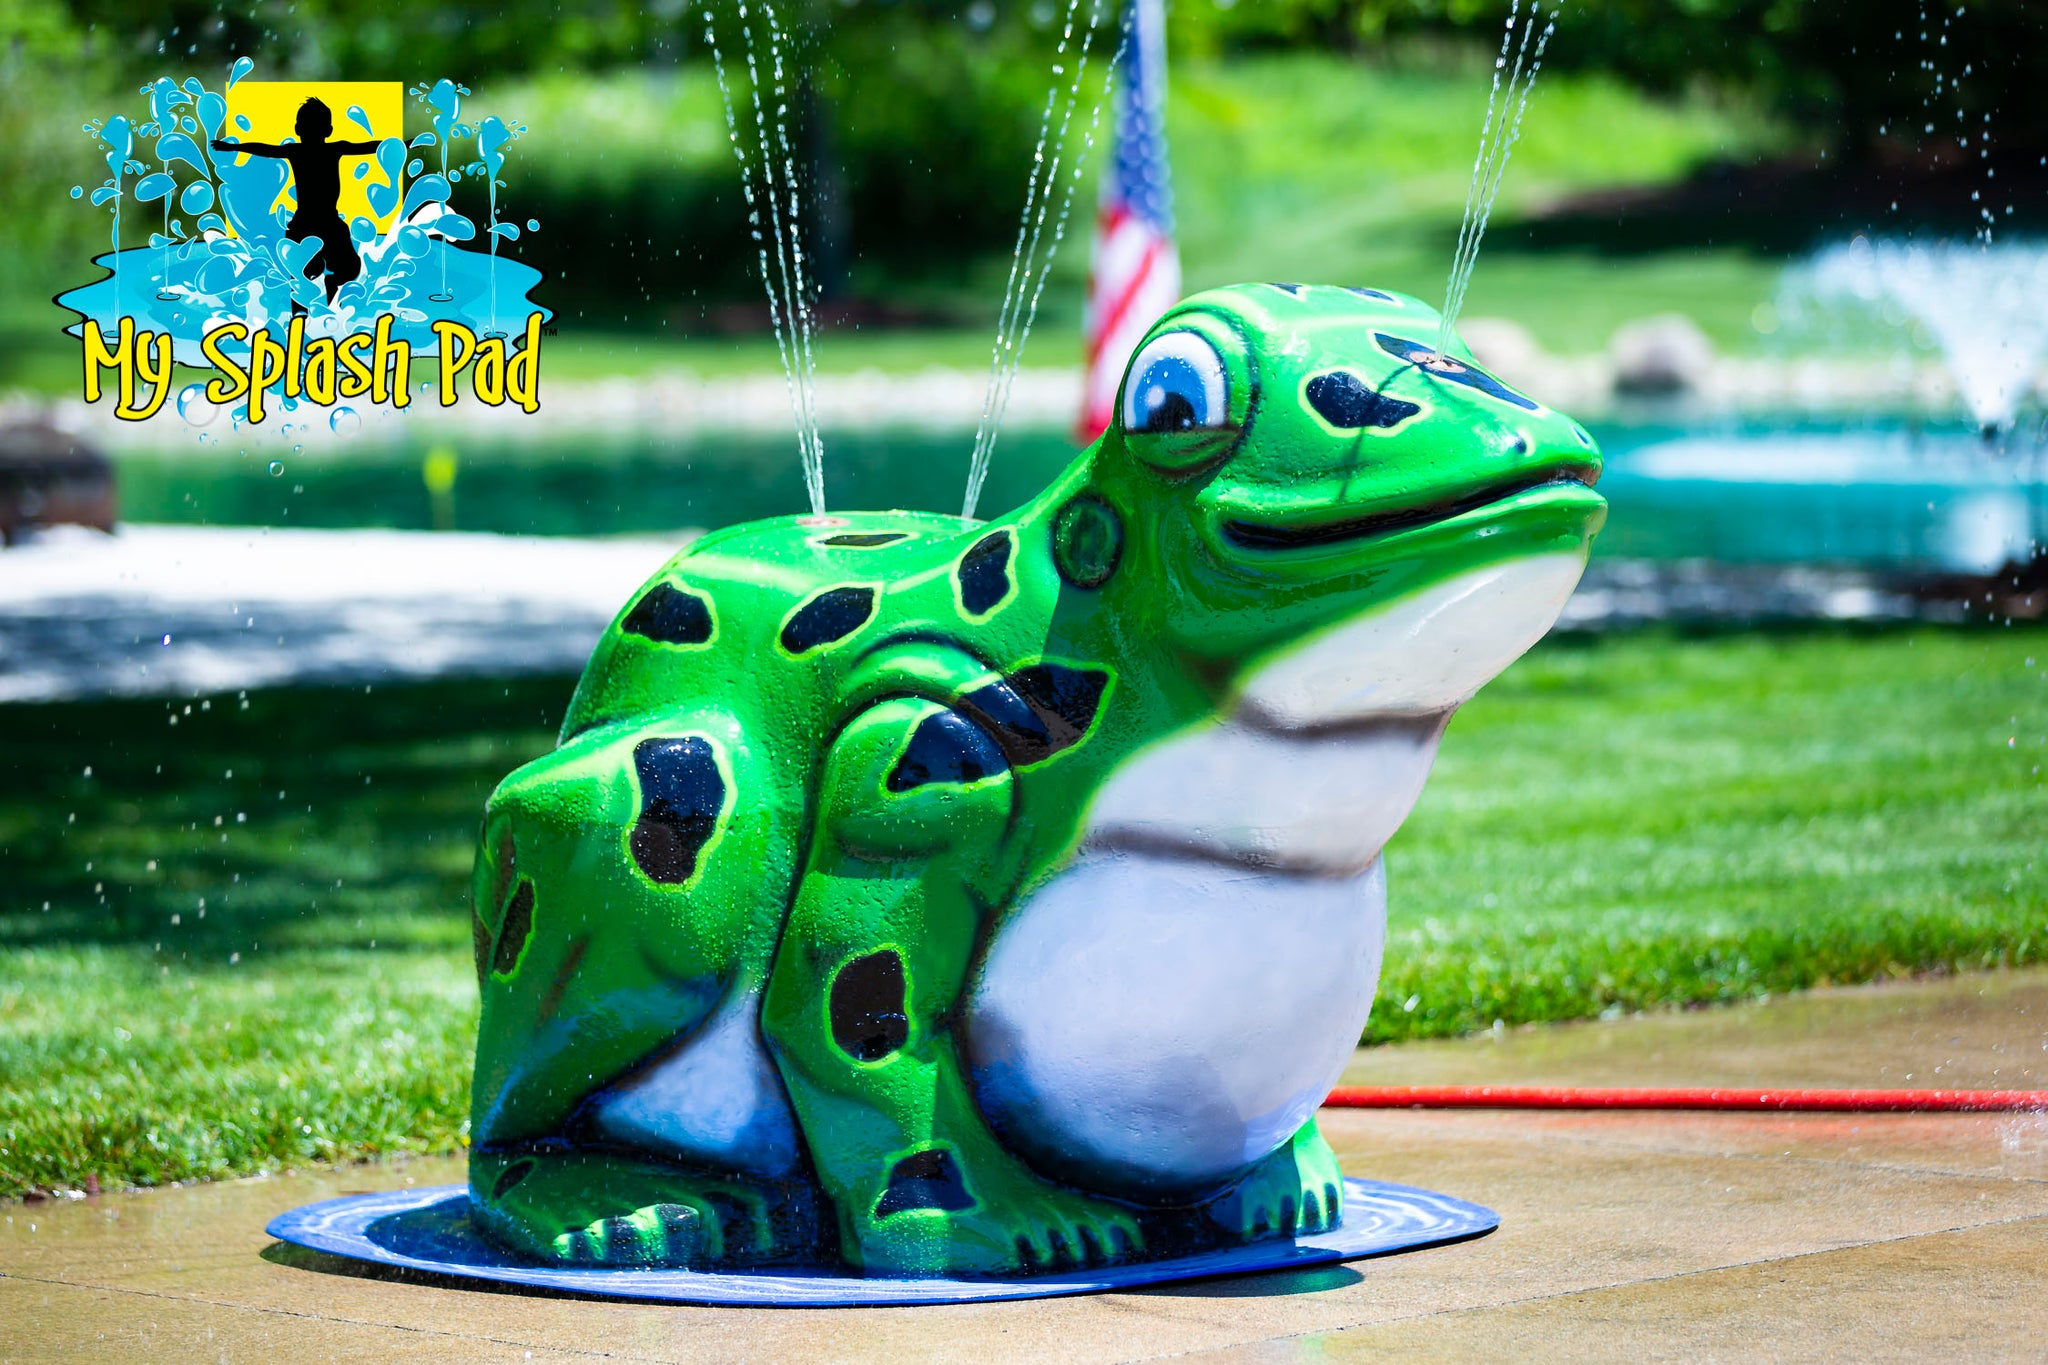 Mobile Spray and Play Features are part of our innovative line of portable outdoor water play equipment